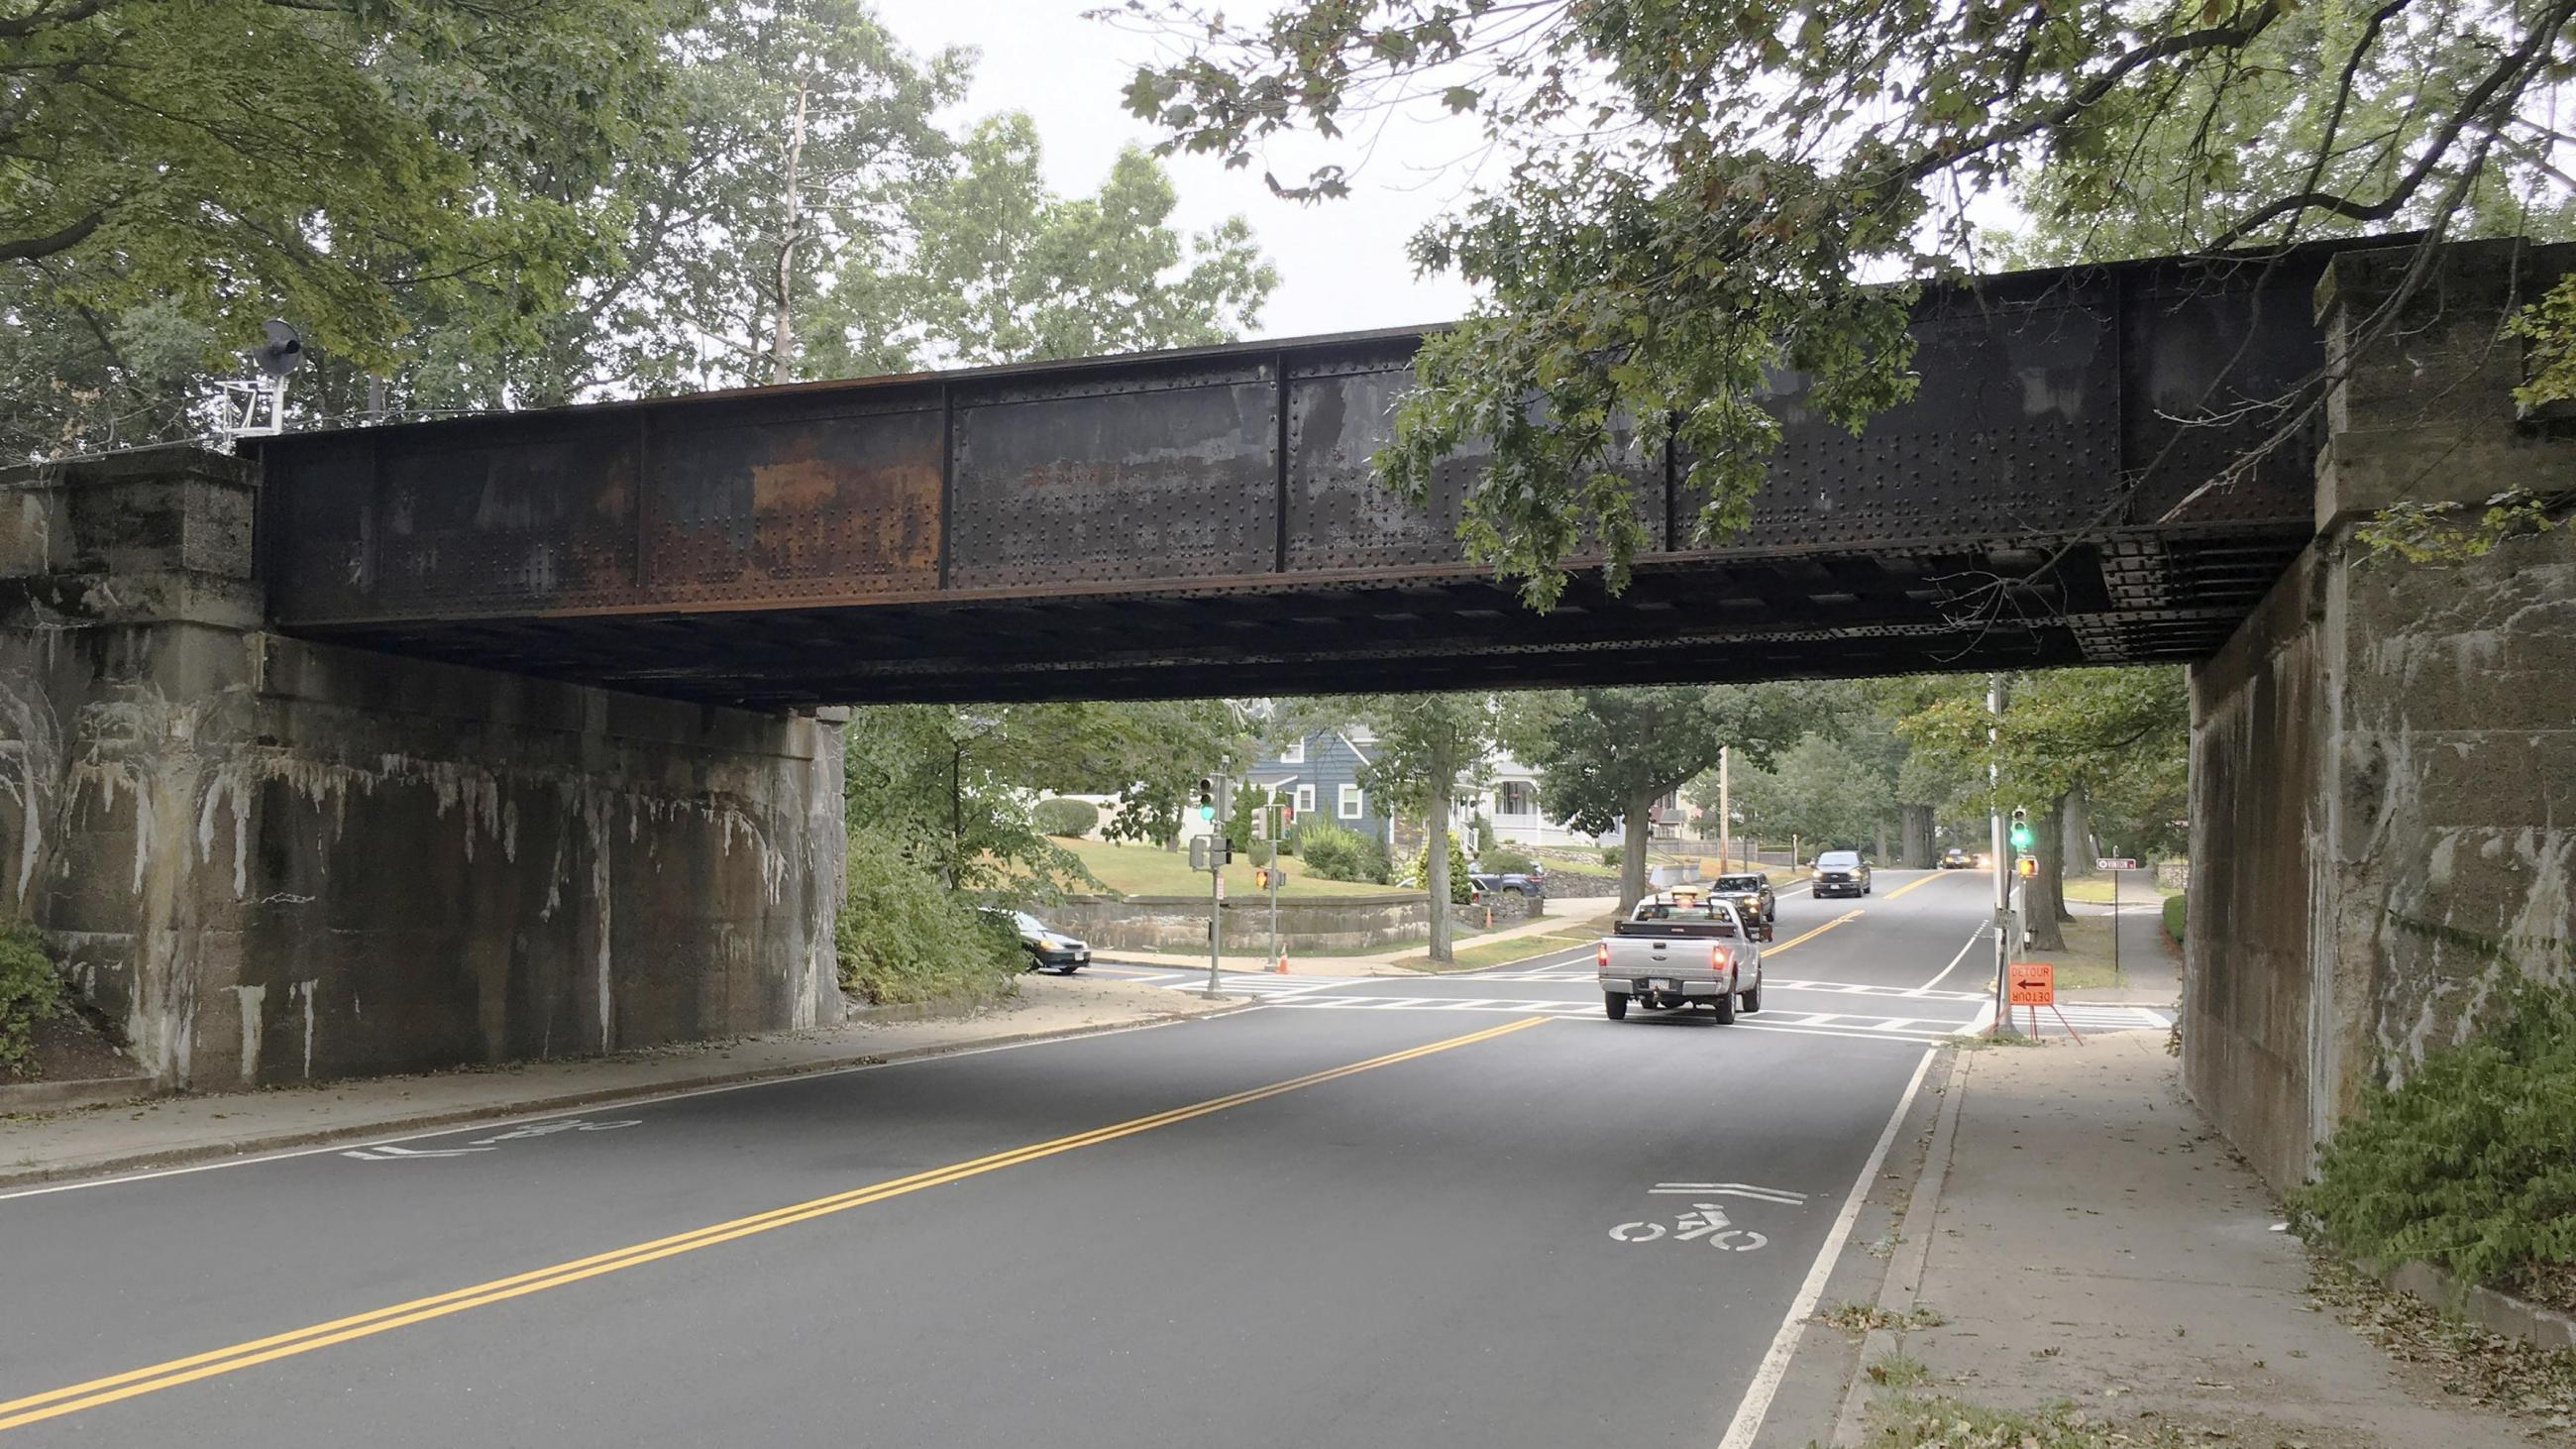 The existing Lynn Fells Parkway bridge on the Haverhill Line of the Commuter Rail